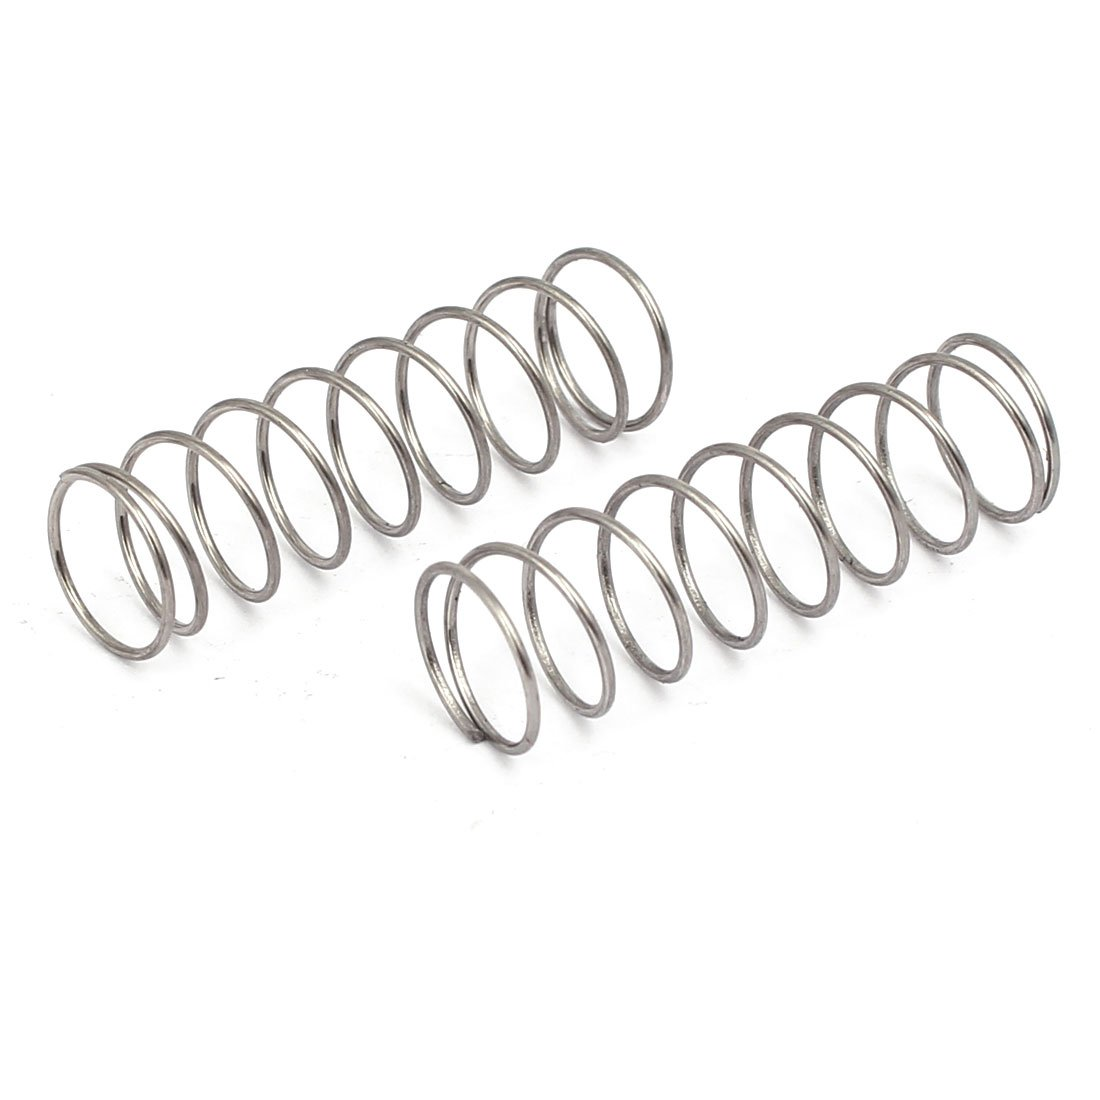 Aexit 0.6mmx9mmx30mm 304 Springs Stainless Steel Compression Springs Silver Compression Springs Tone 20pcs